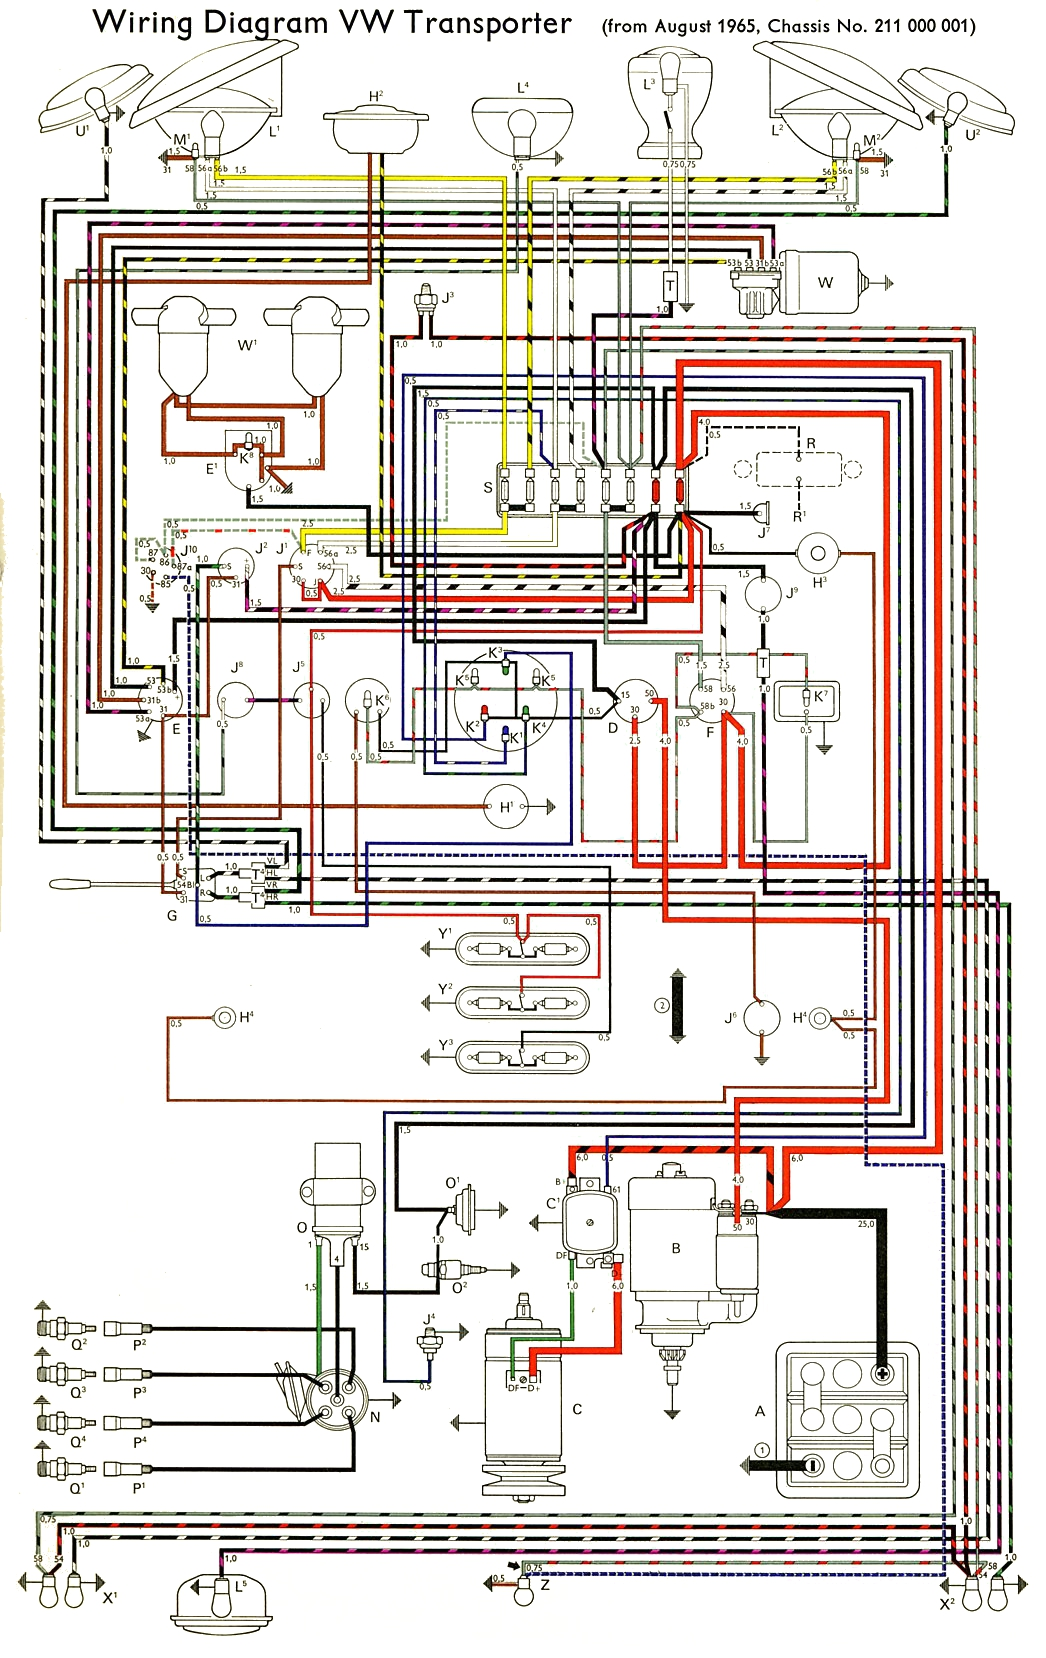 bus_66 electrical wiring diagrams beetle 1971 electrical wiring 1971 vw beetle wiring diagram at honlapkeszites.co